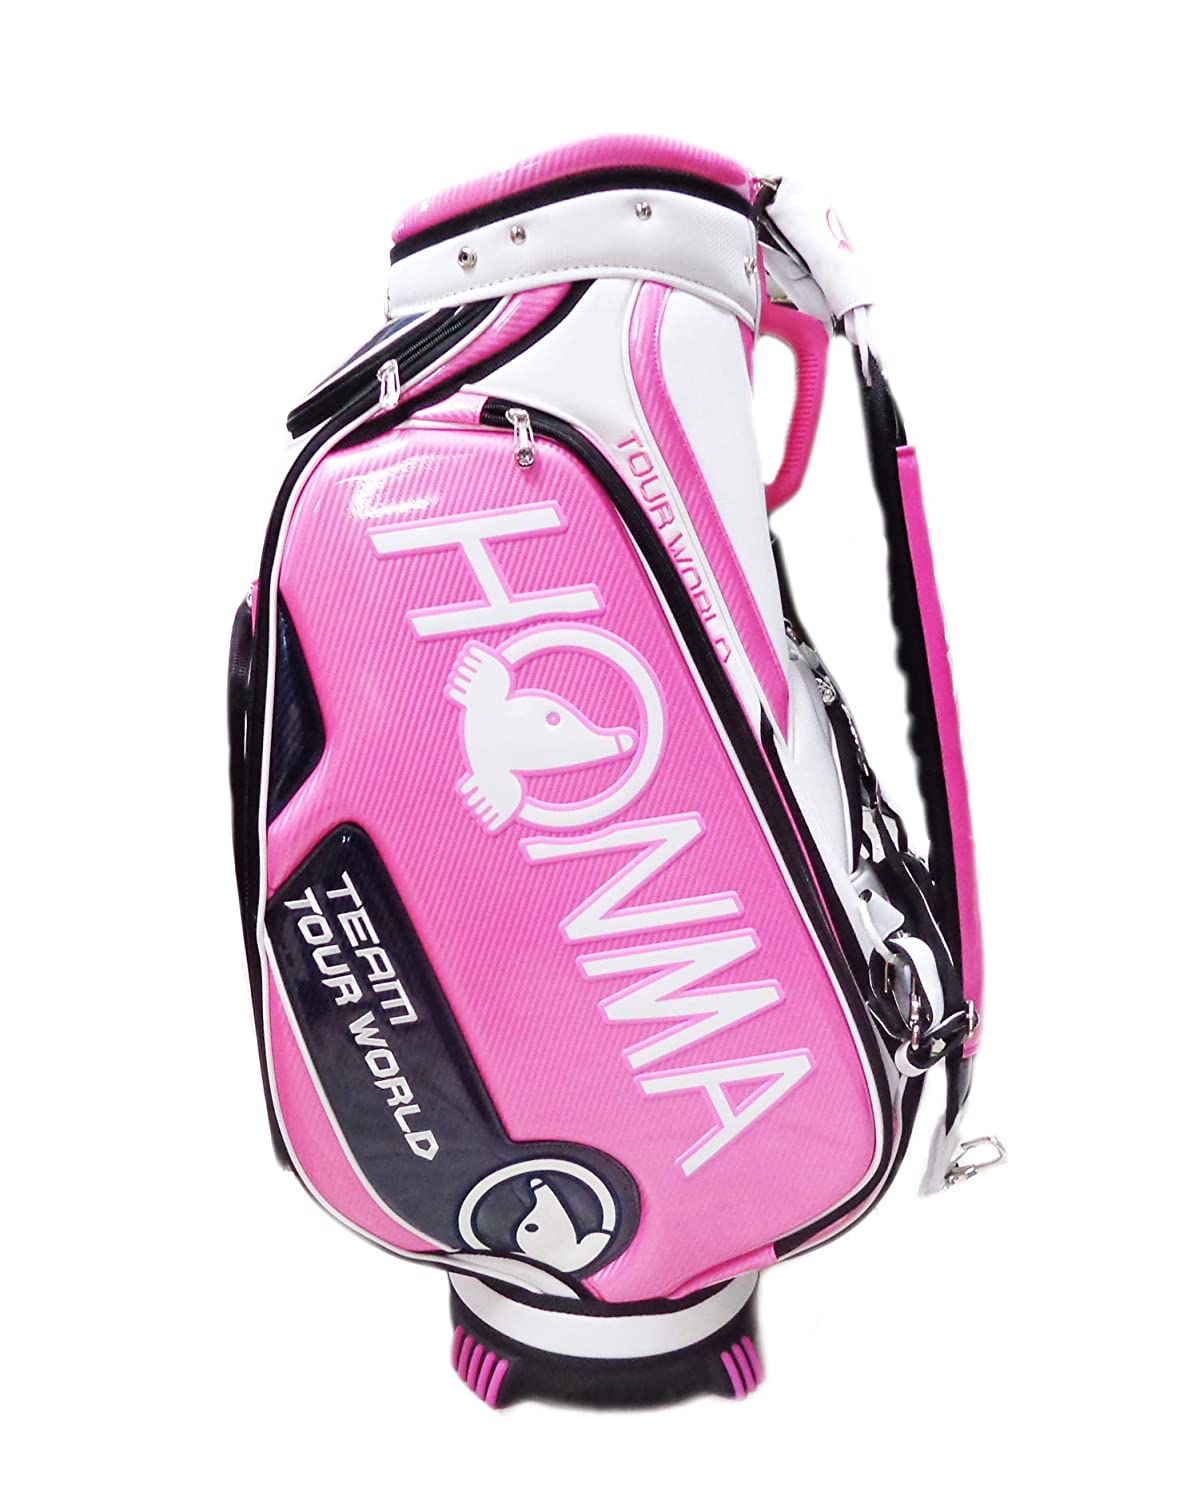 Amazon.com: Honma New Tour World CB-1801 - Bolsa de viaje de ...